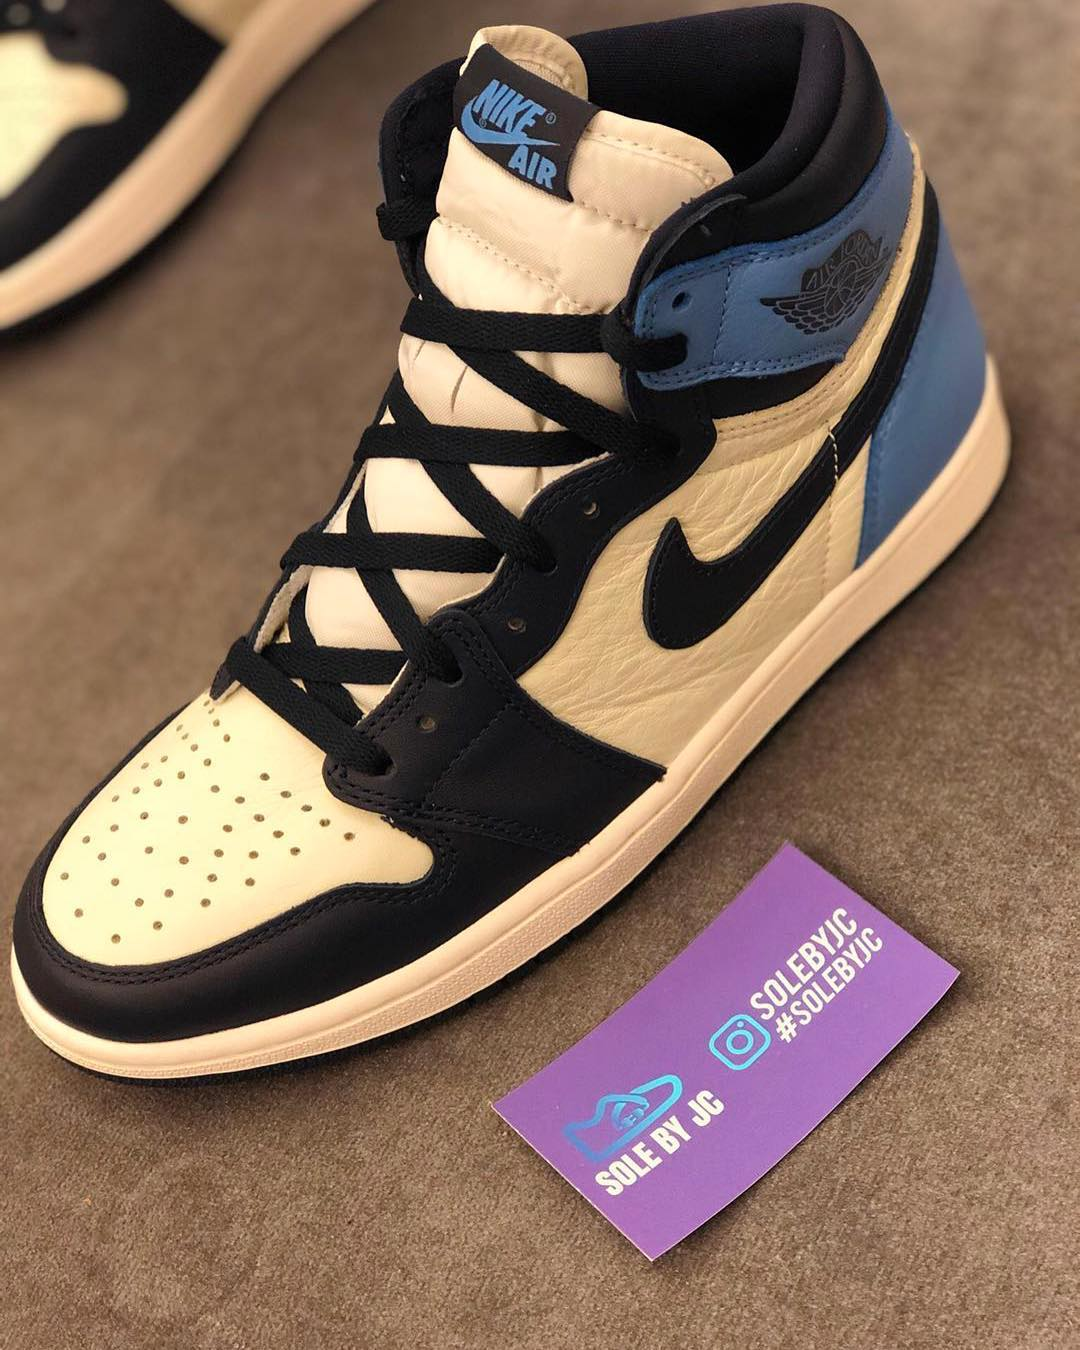 Air Jordan 1 'Sail/Obsidian-University Blue' 555088-140 1